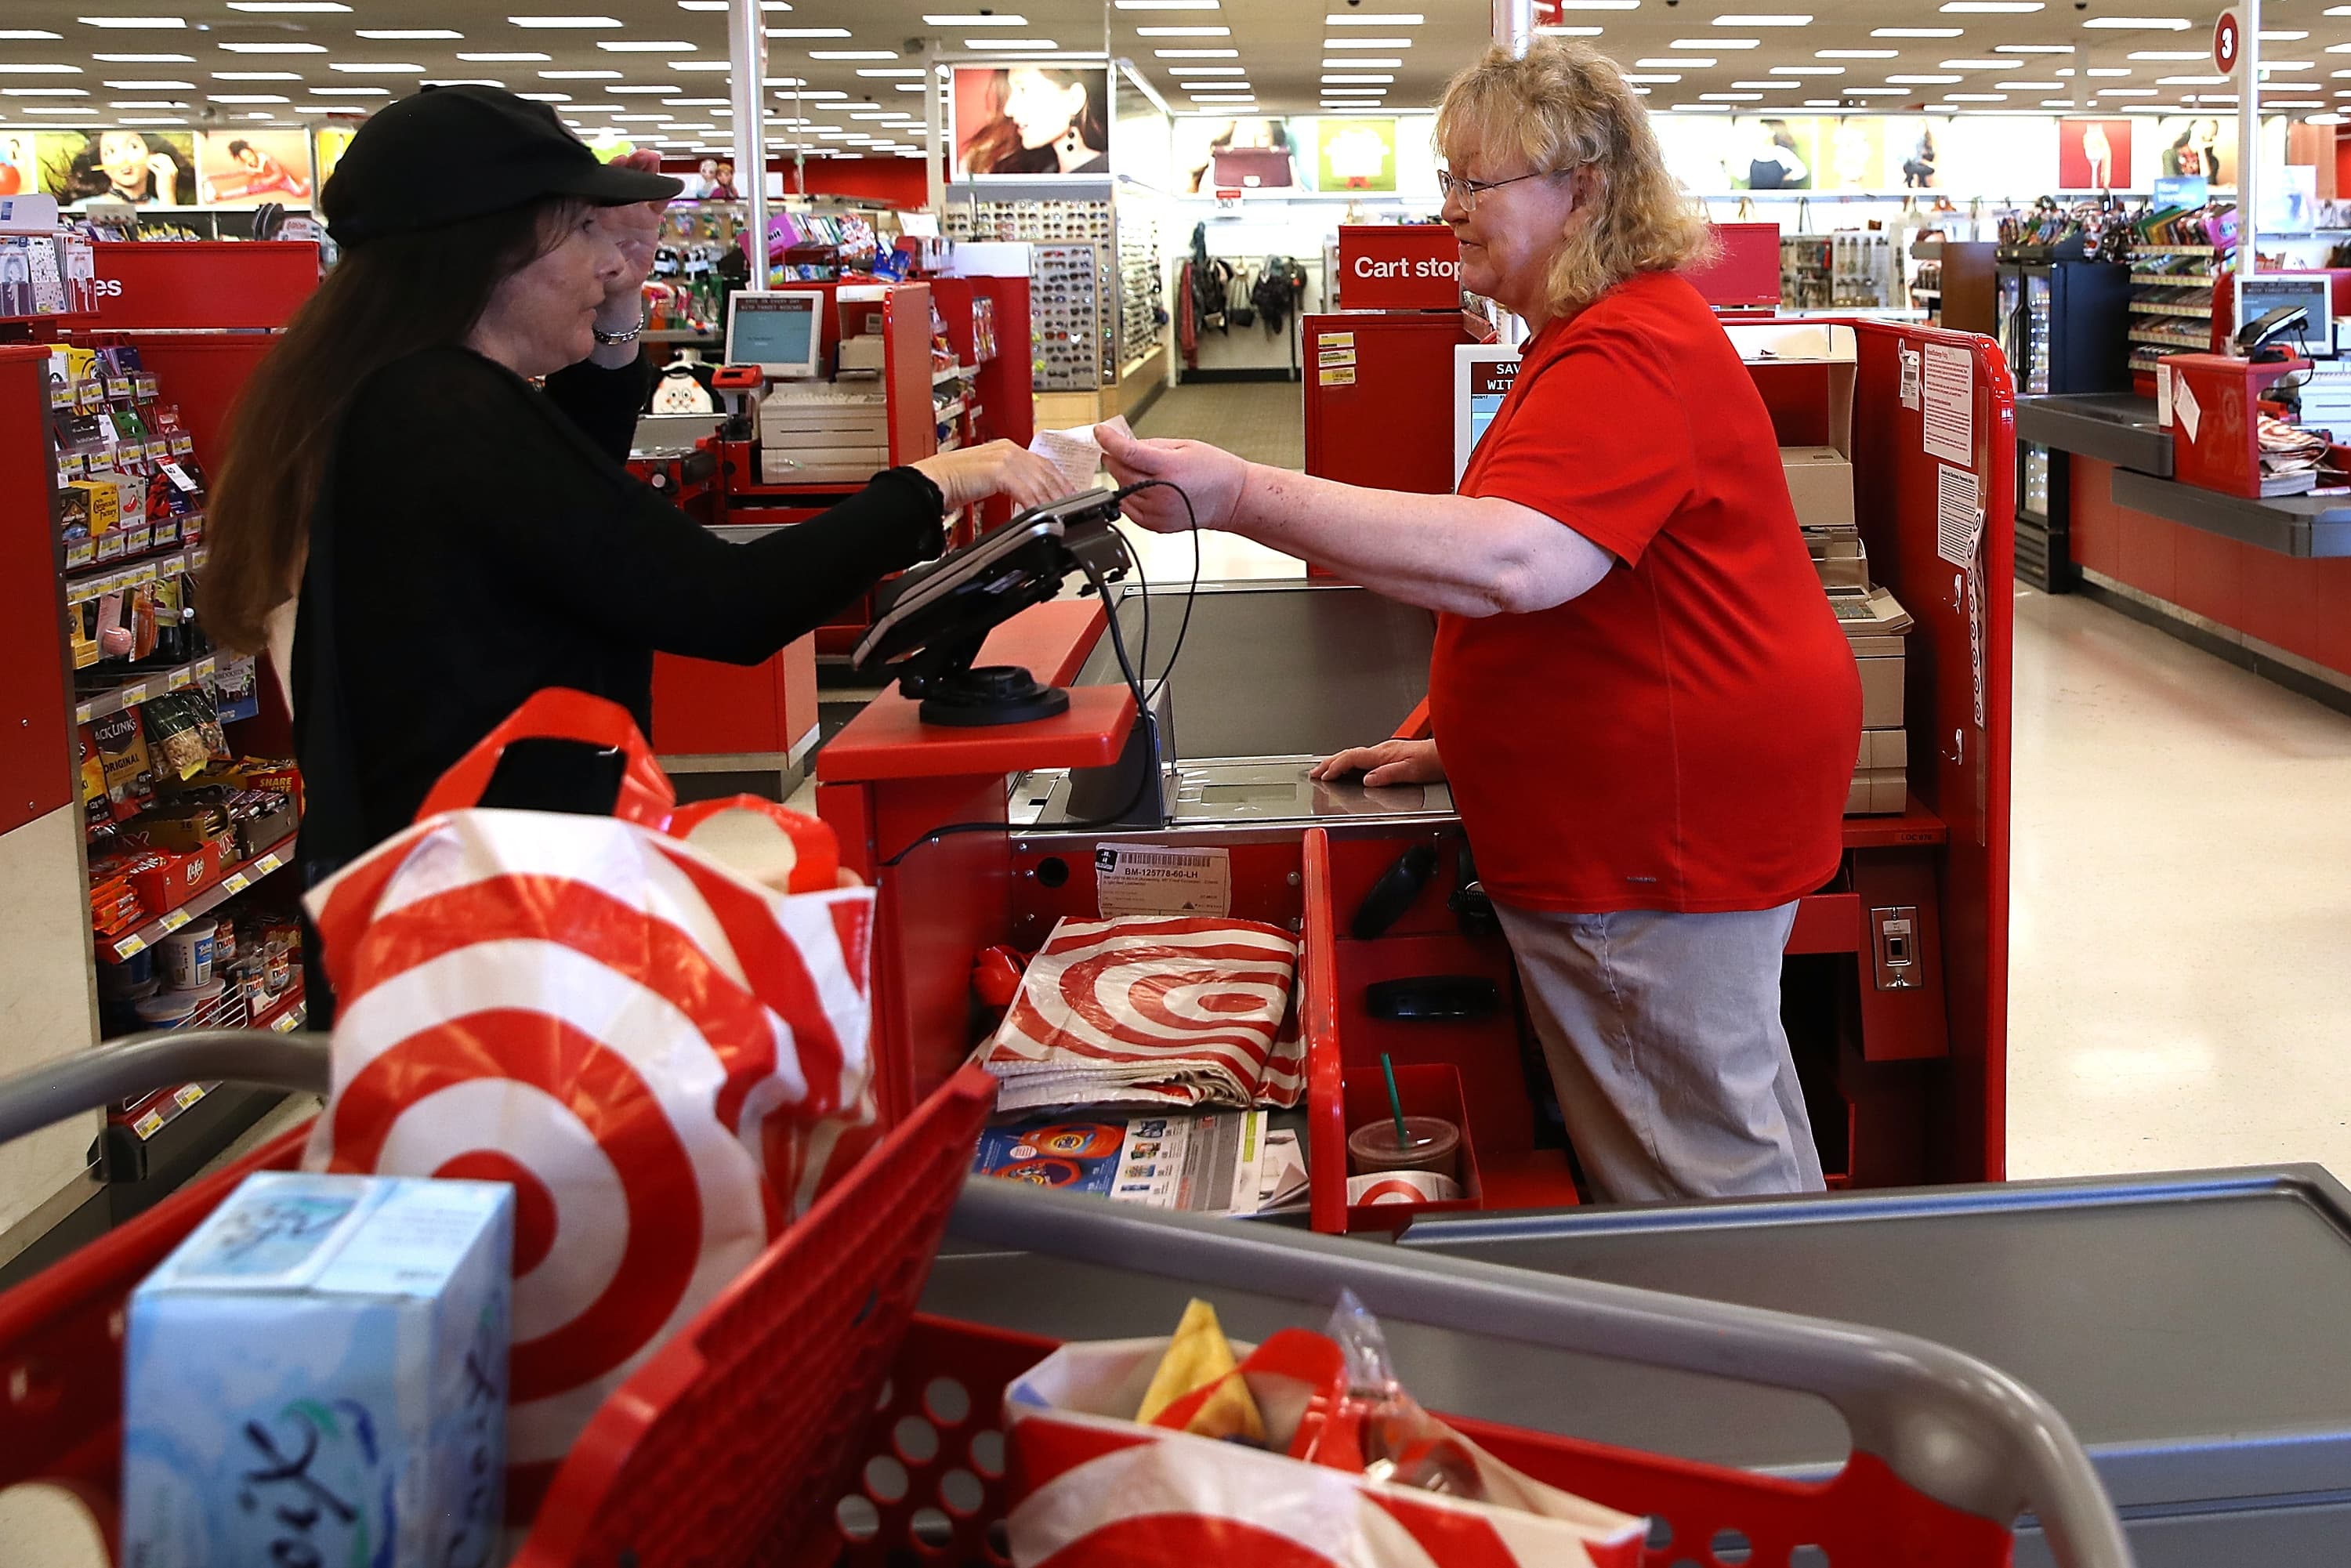 Target CEO: The US trade war creates 'uncertainty' and 'complexity'